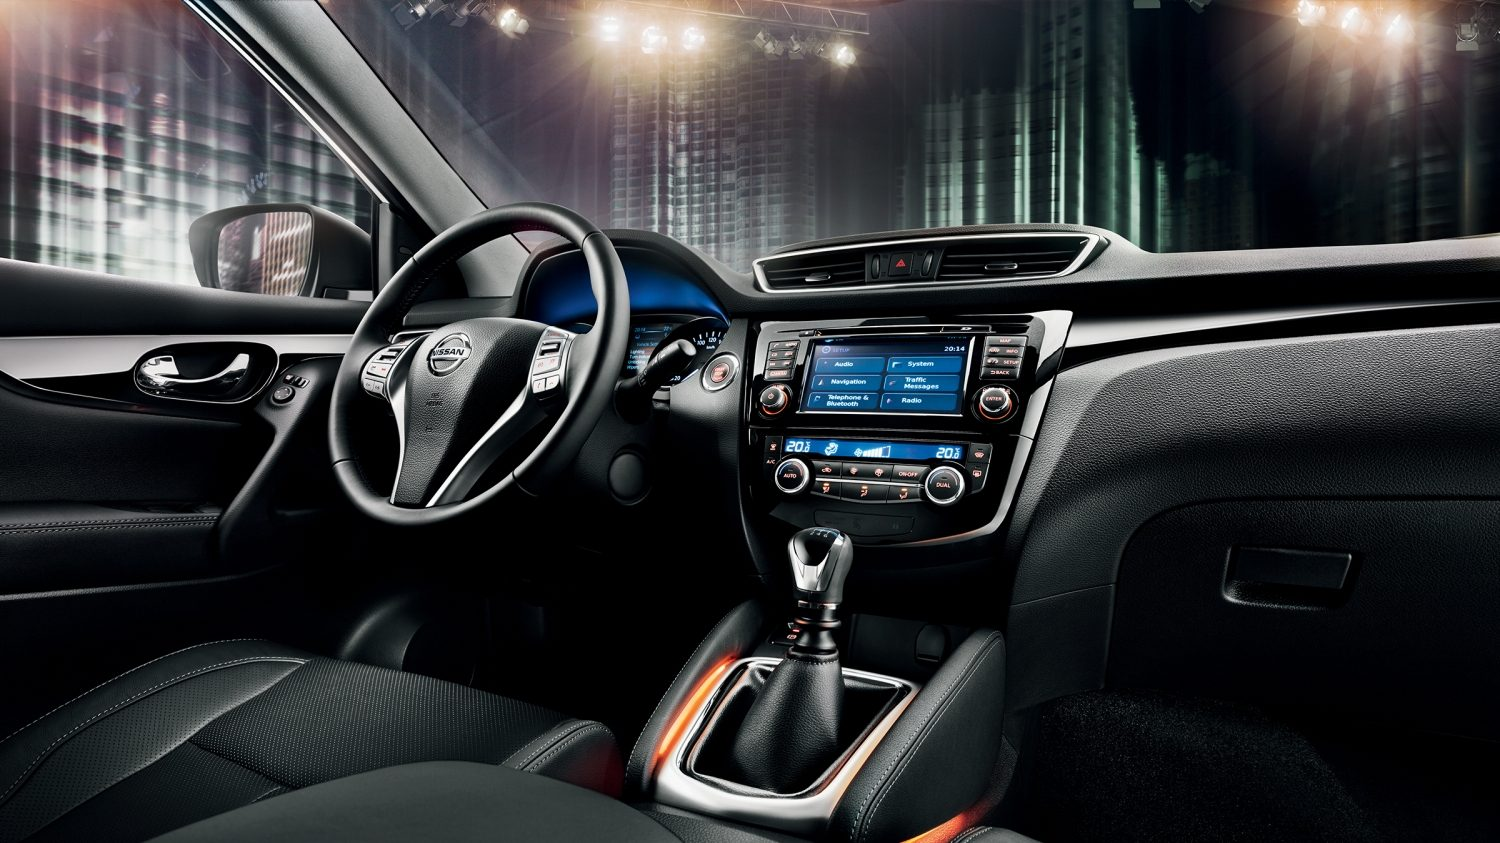 The Qashqai Black Edition's interior with bespoke entry guards.